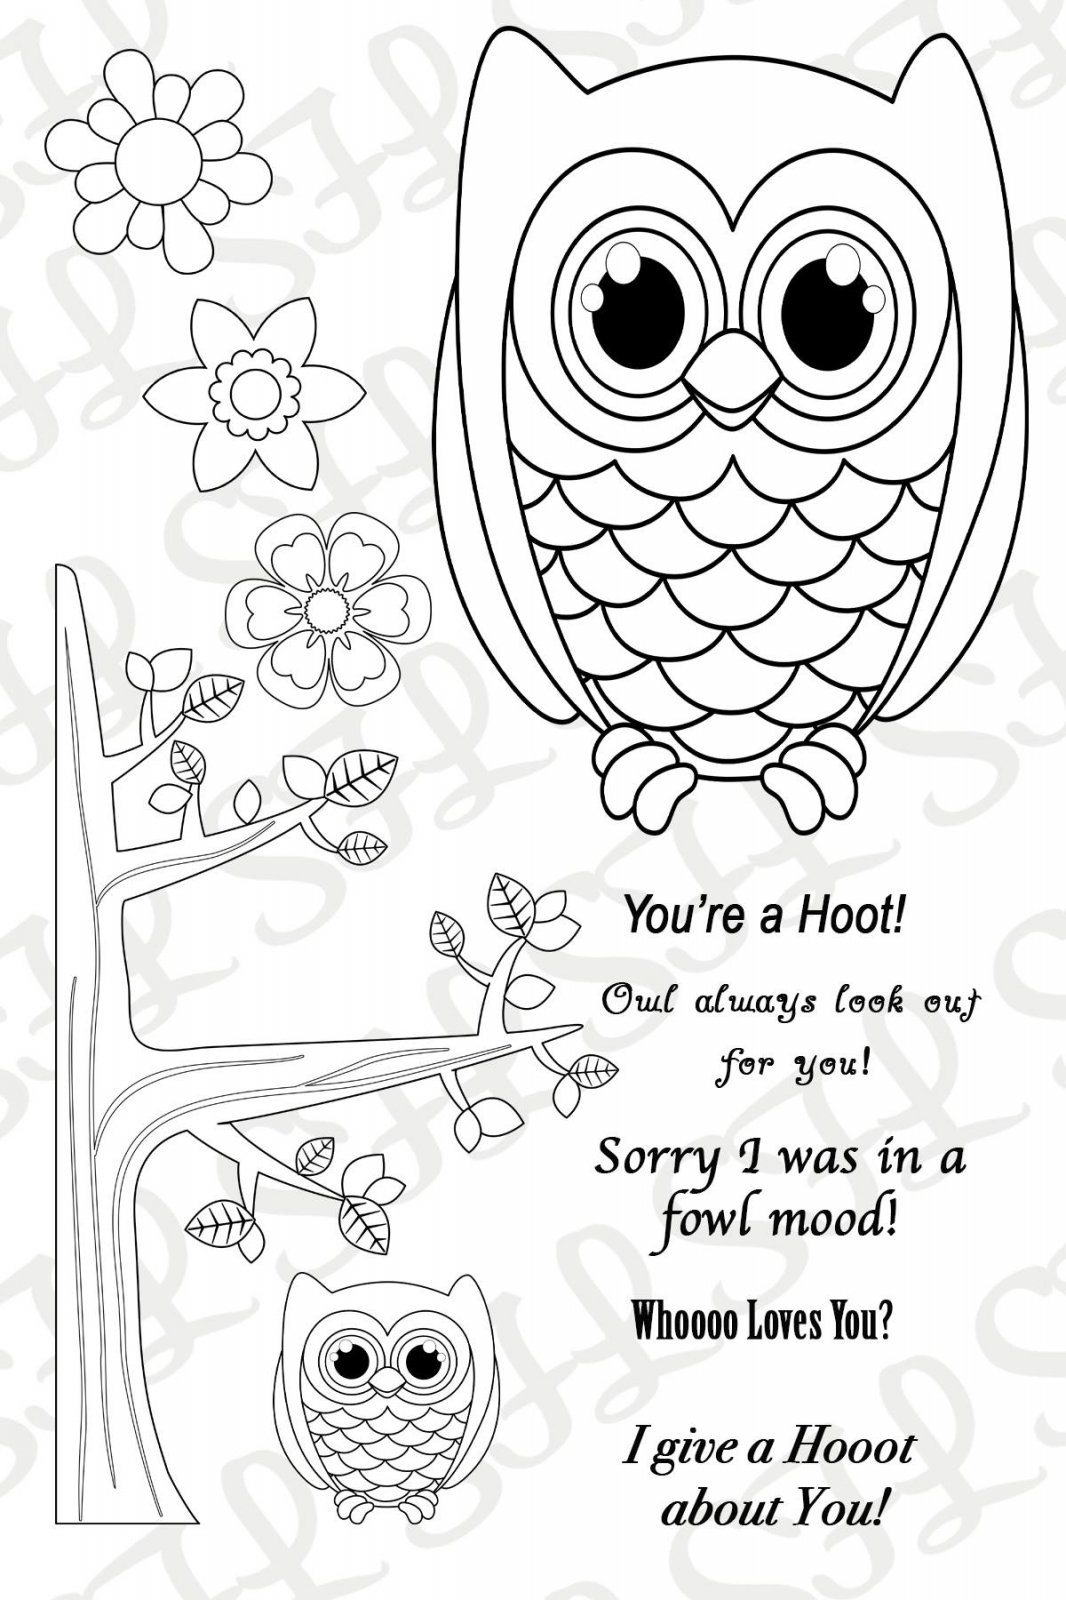 Scrapping for Less Clear Stamps Give a Hoot?